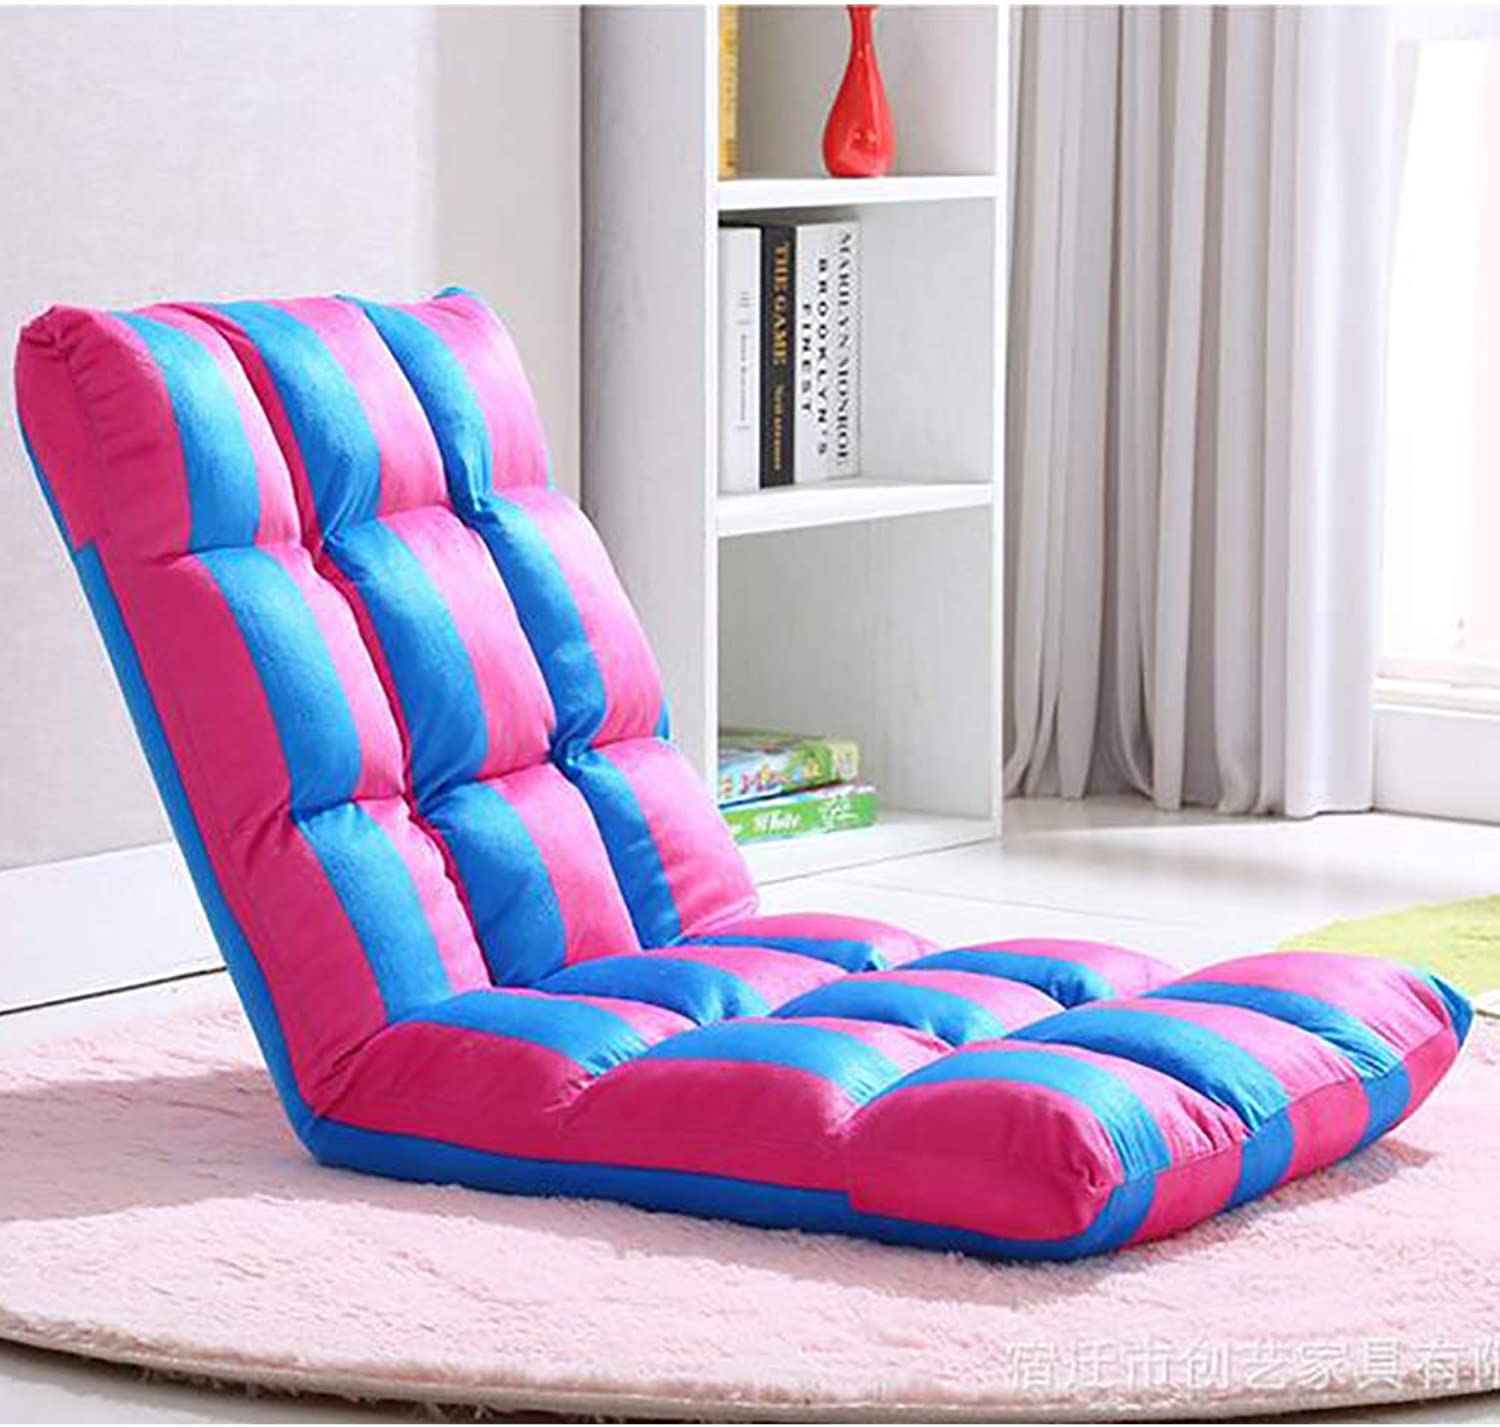 bfb55f2fa67d Padded Floor Gaming 110x52cm(43x20inch) -A Chair Relaxing Soft ...